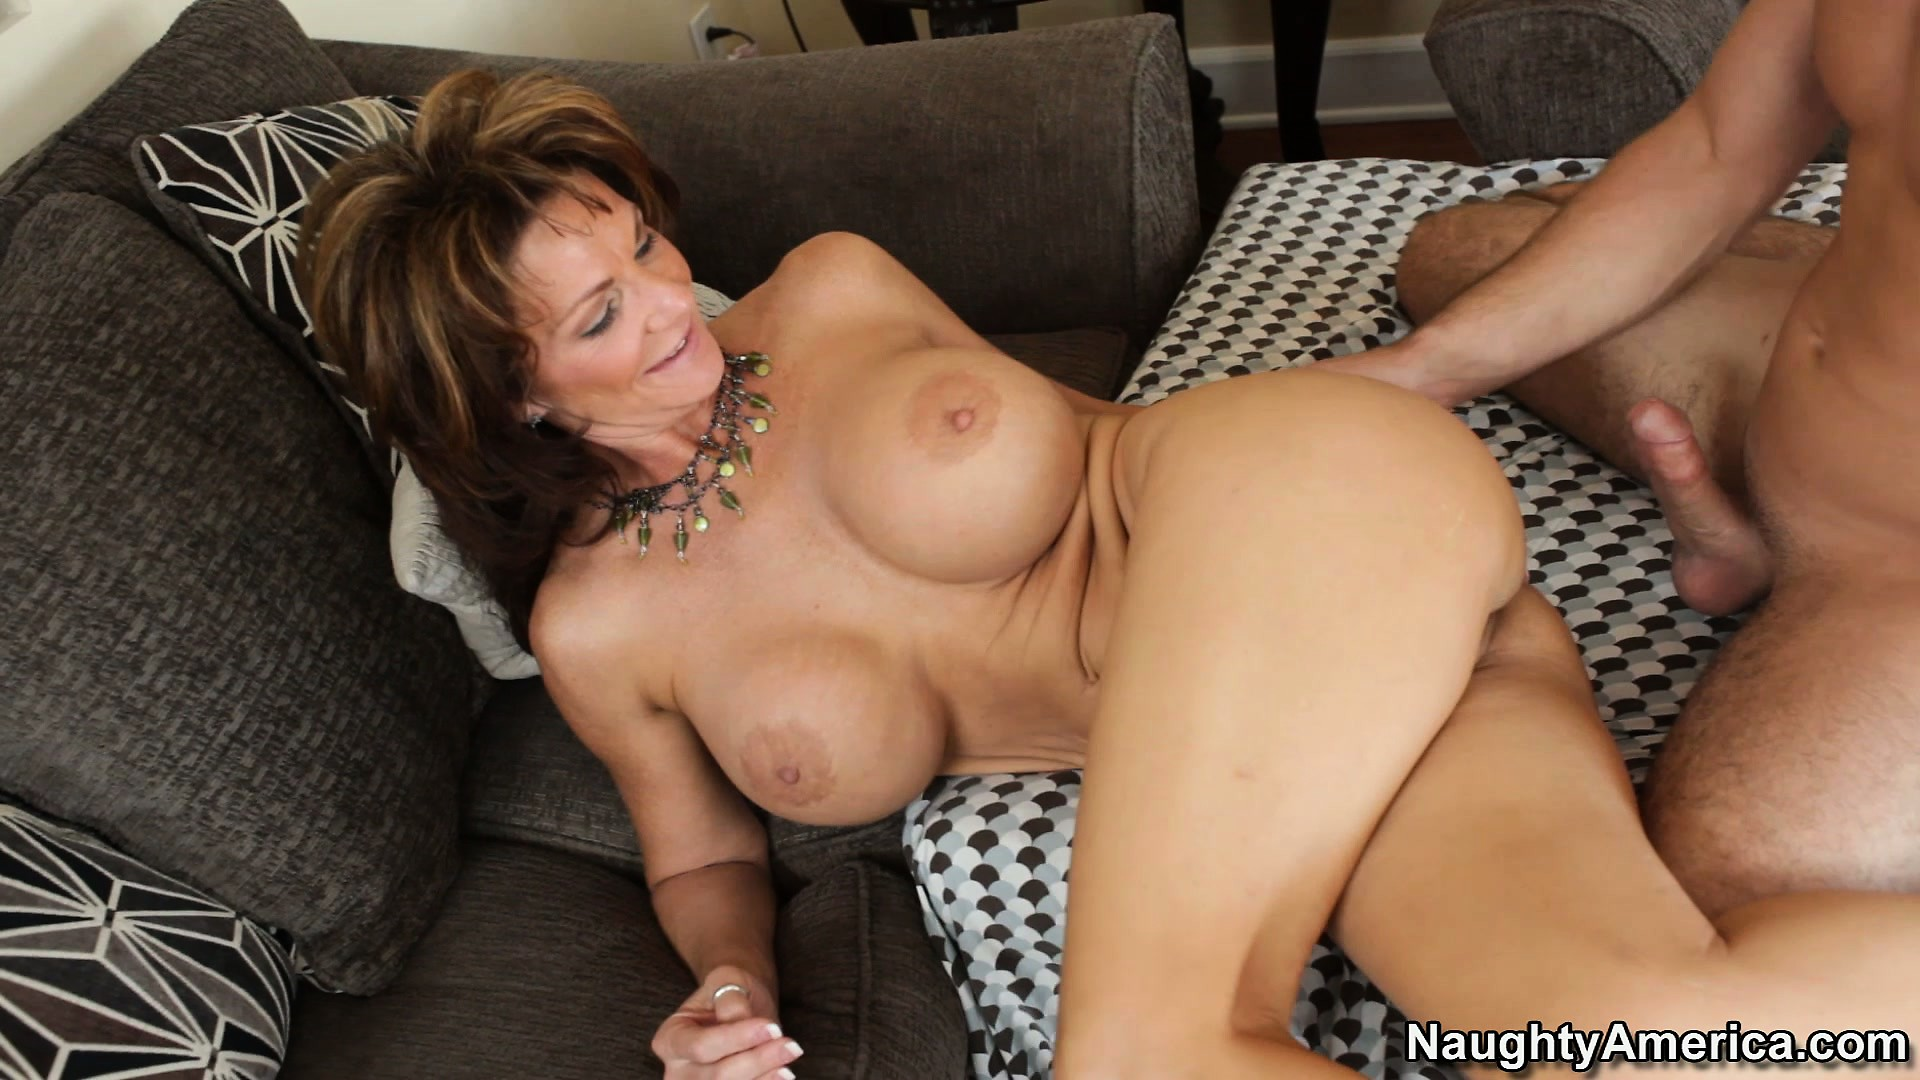 Porno Video of He Fucks Deauxma's Wet Pussy Then Lays Back So She Can Ride Him